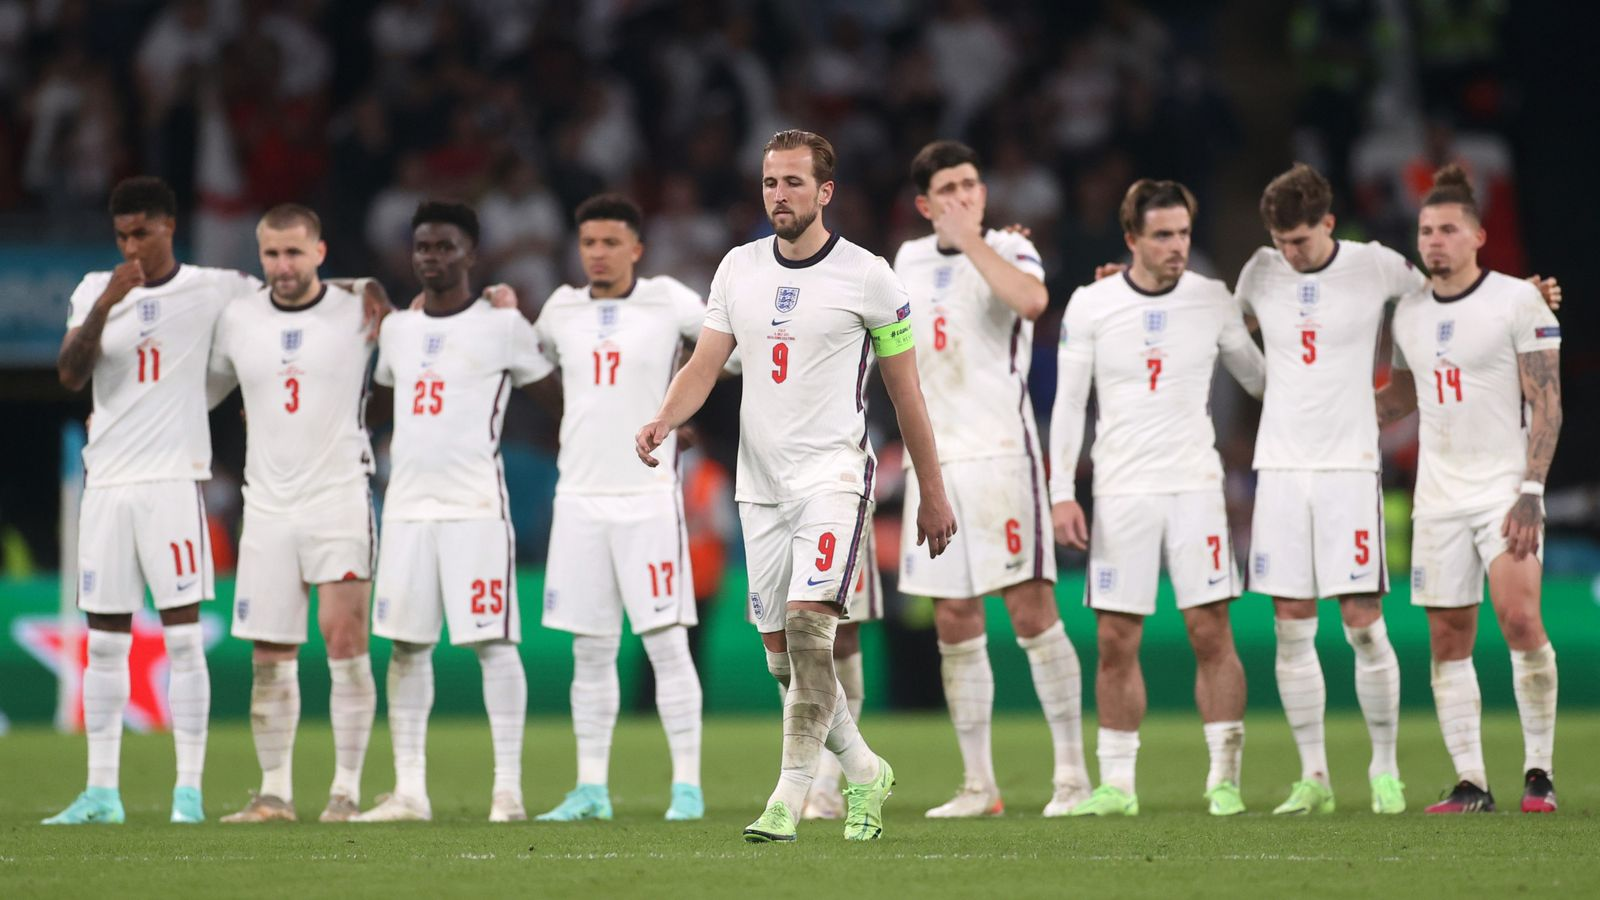 Euro 2020: 'You can all hold your heads high', Prince William tells England after 'heartbreaking' result